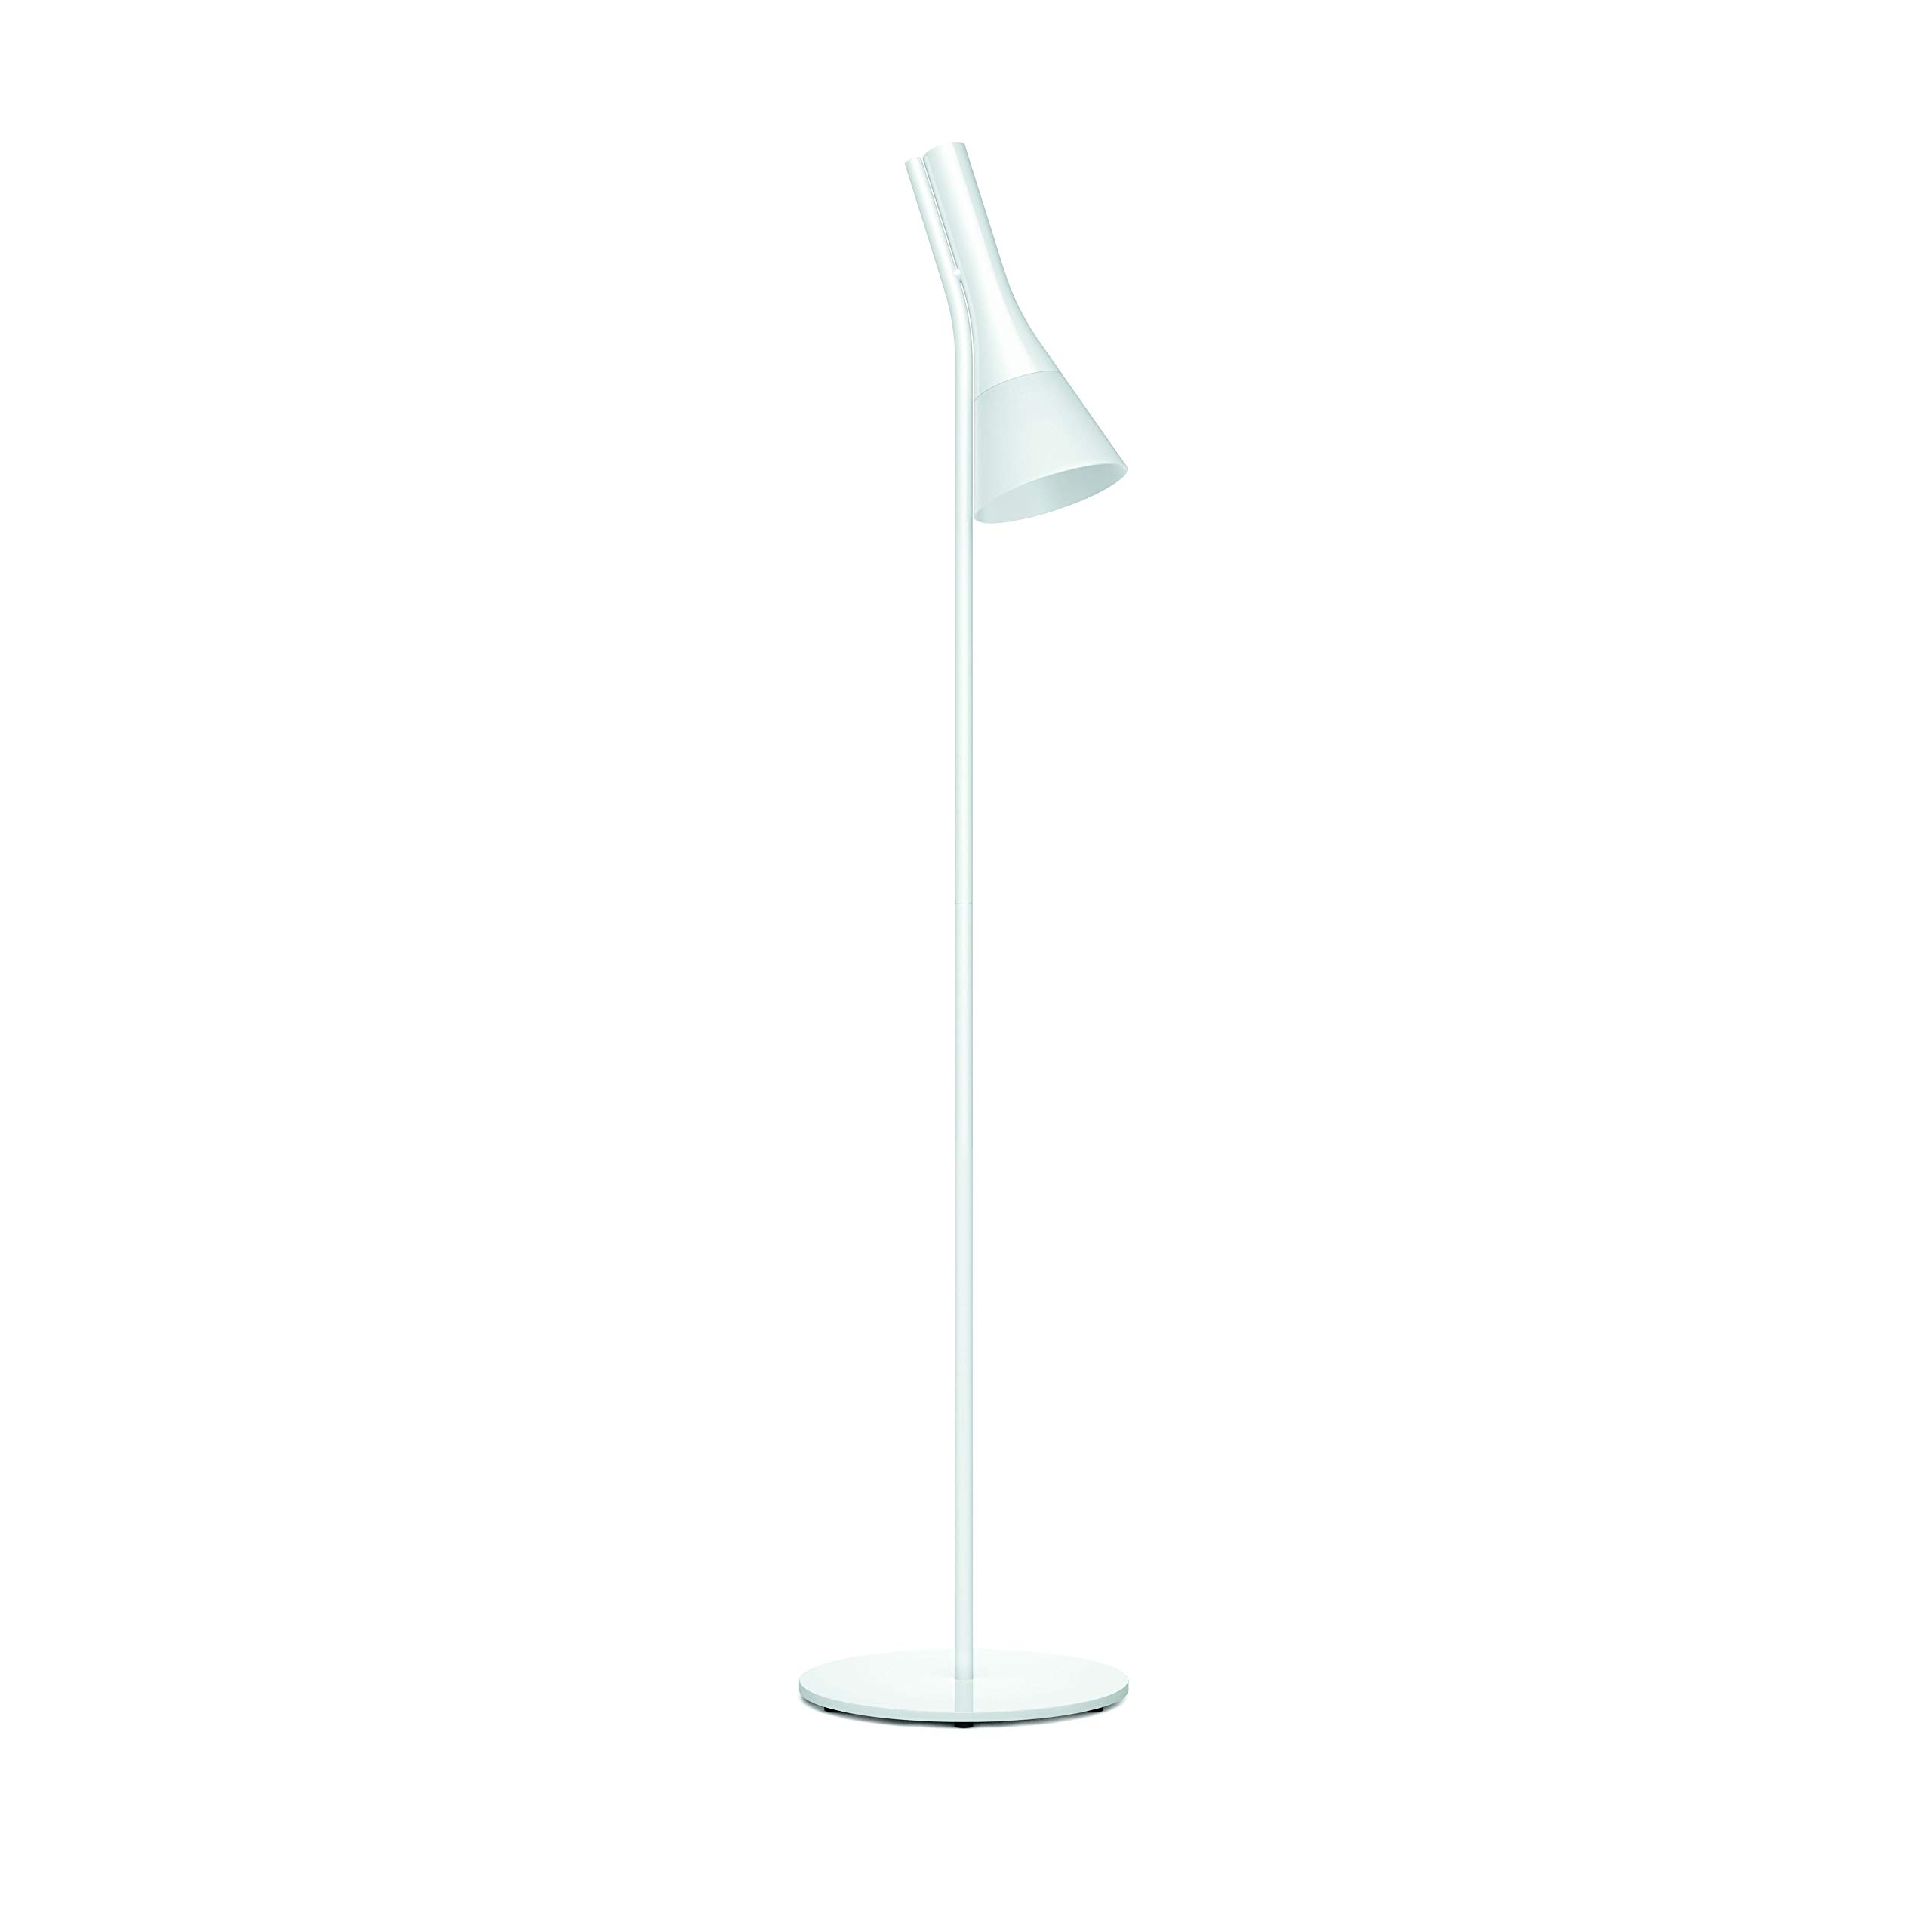 HUE White & Color AMBIANCE Ascend Floor LAMP